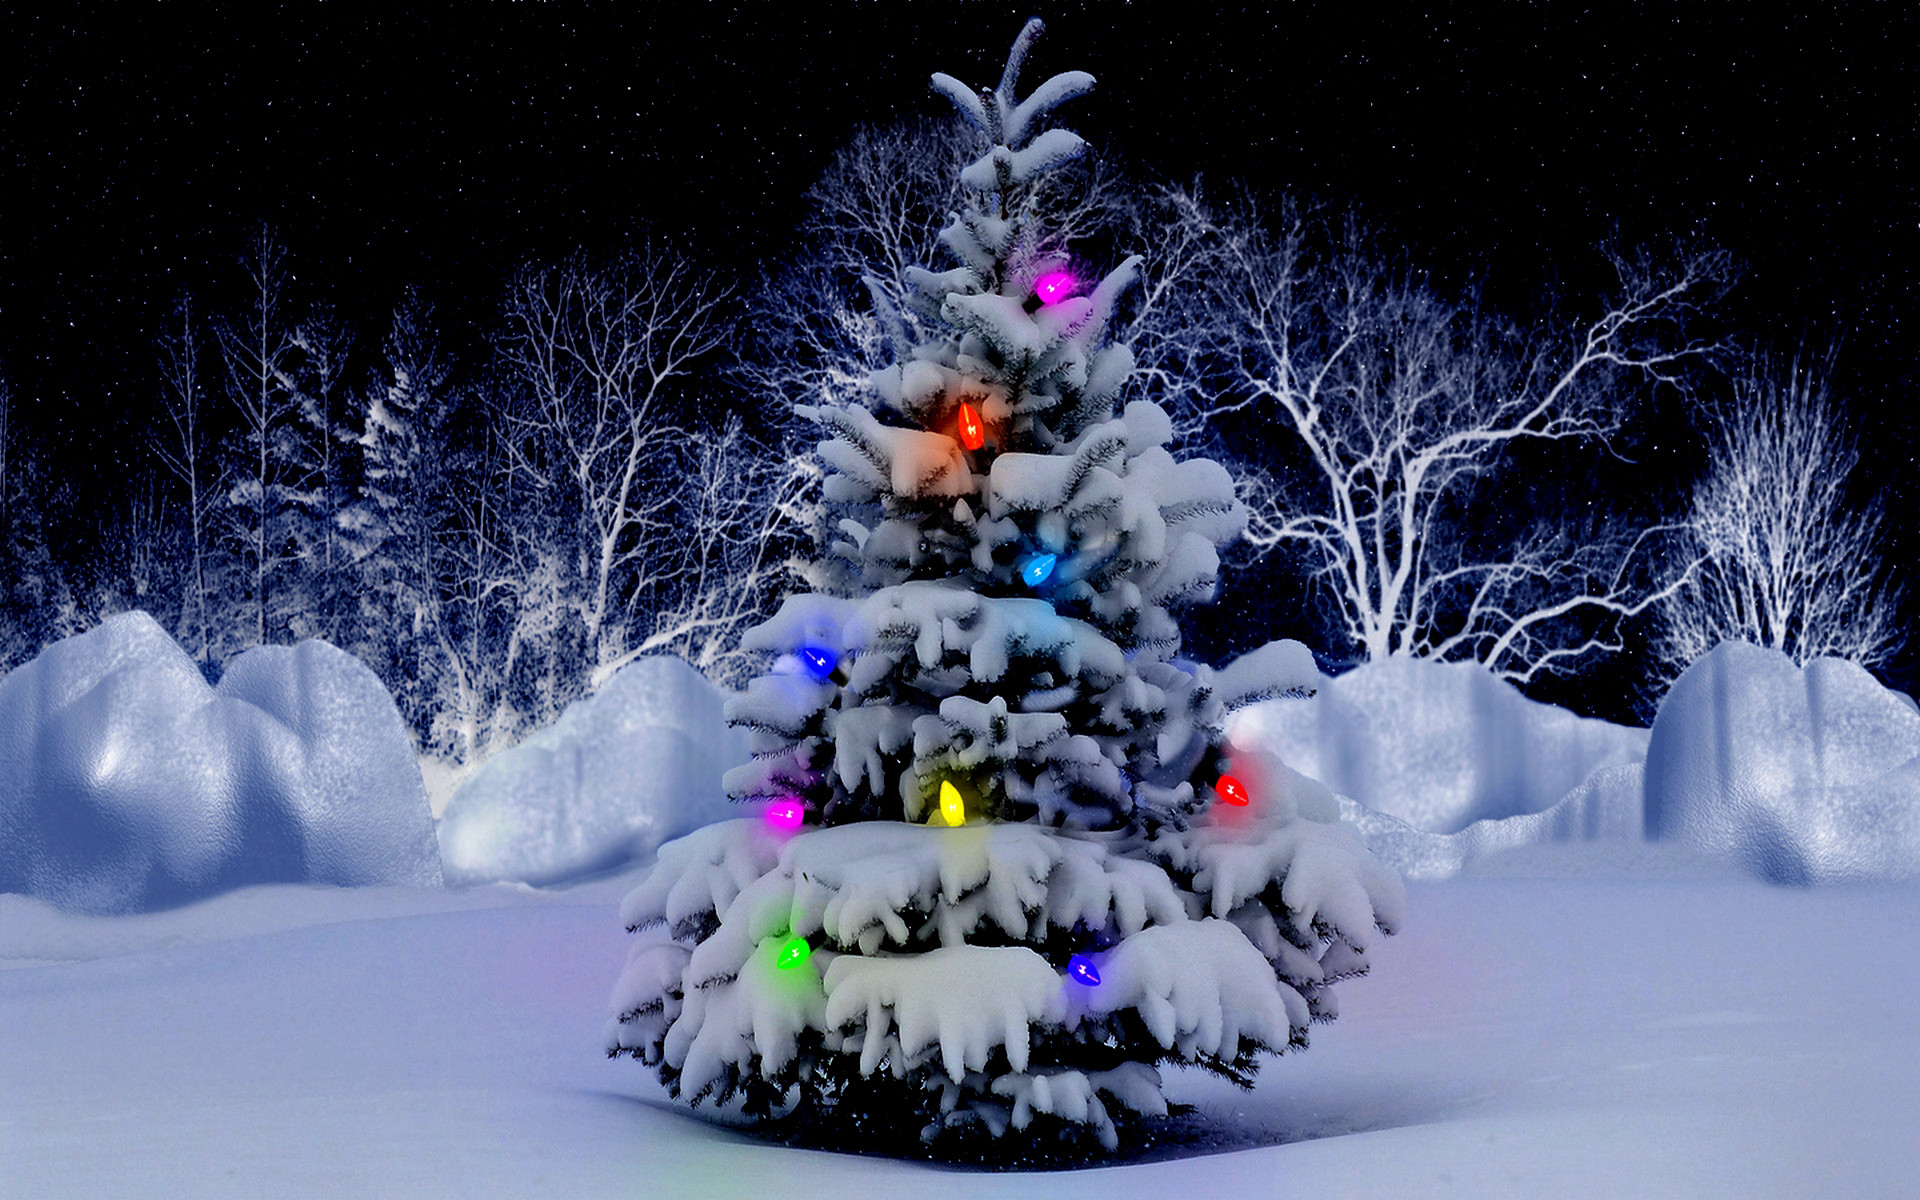 Pretty Christmas Wallpaper 52 Images